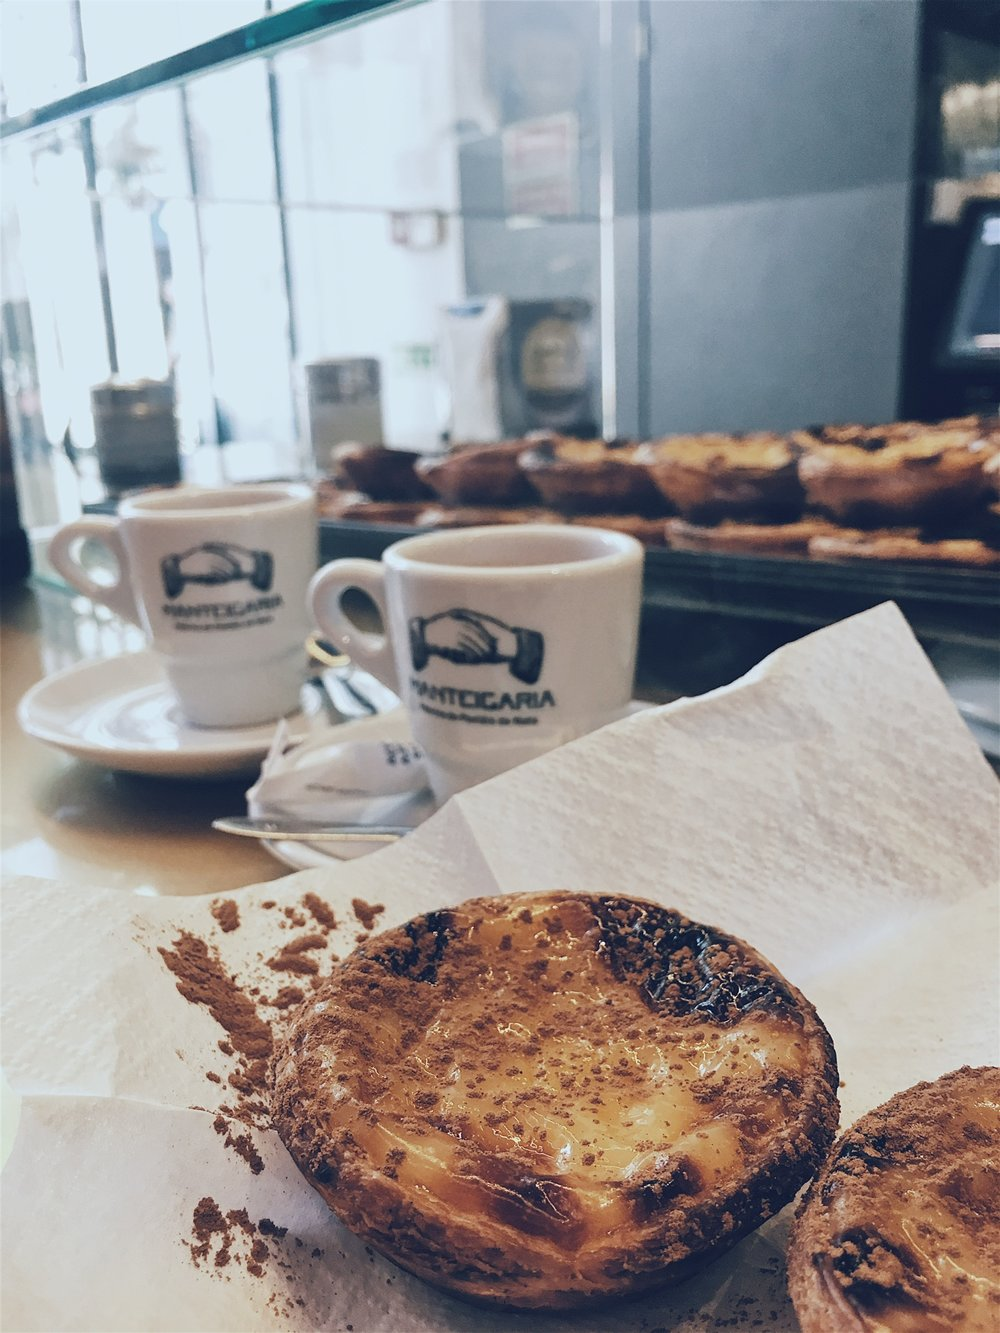 Two pasteis de nata and two espressos